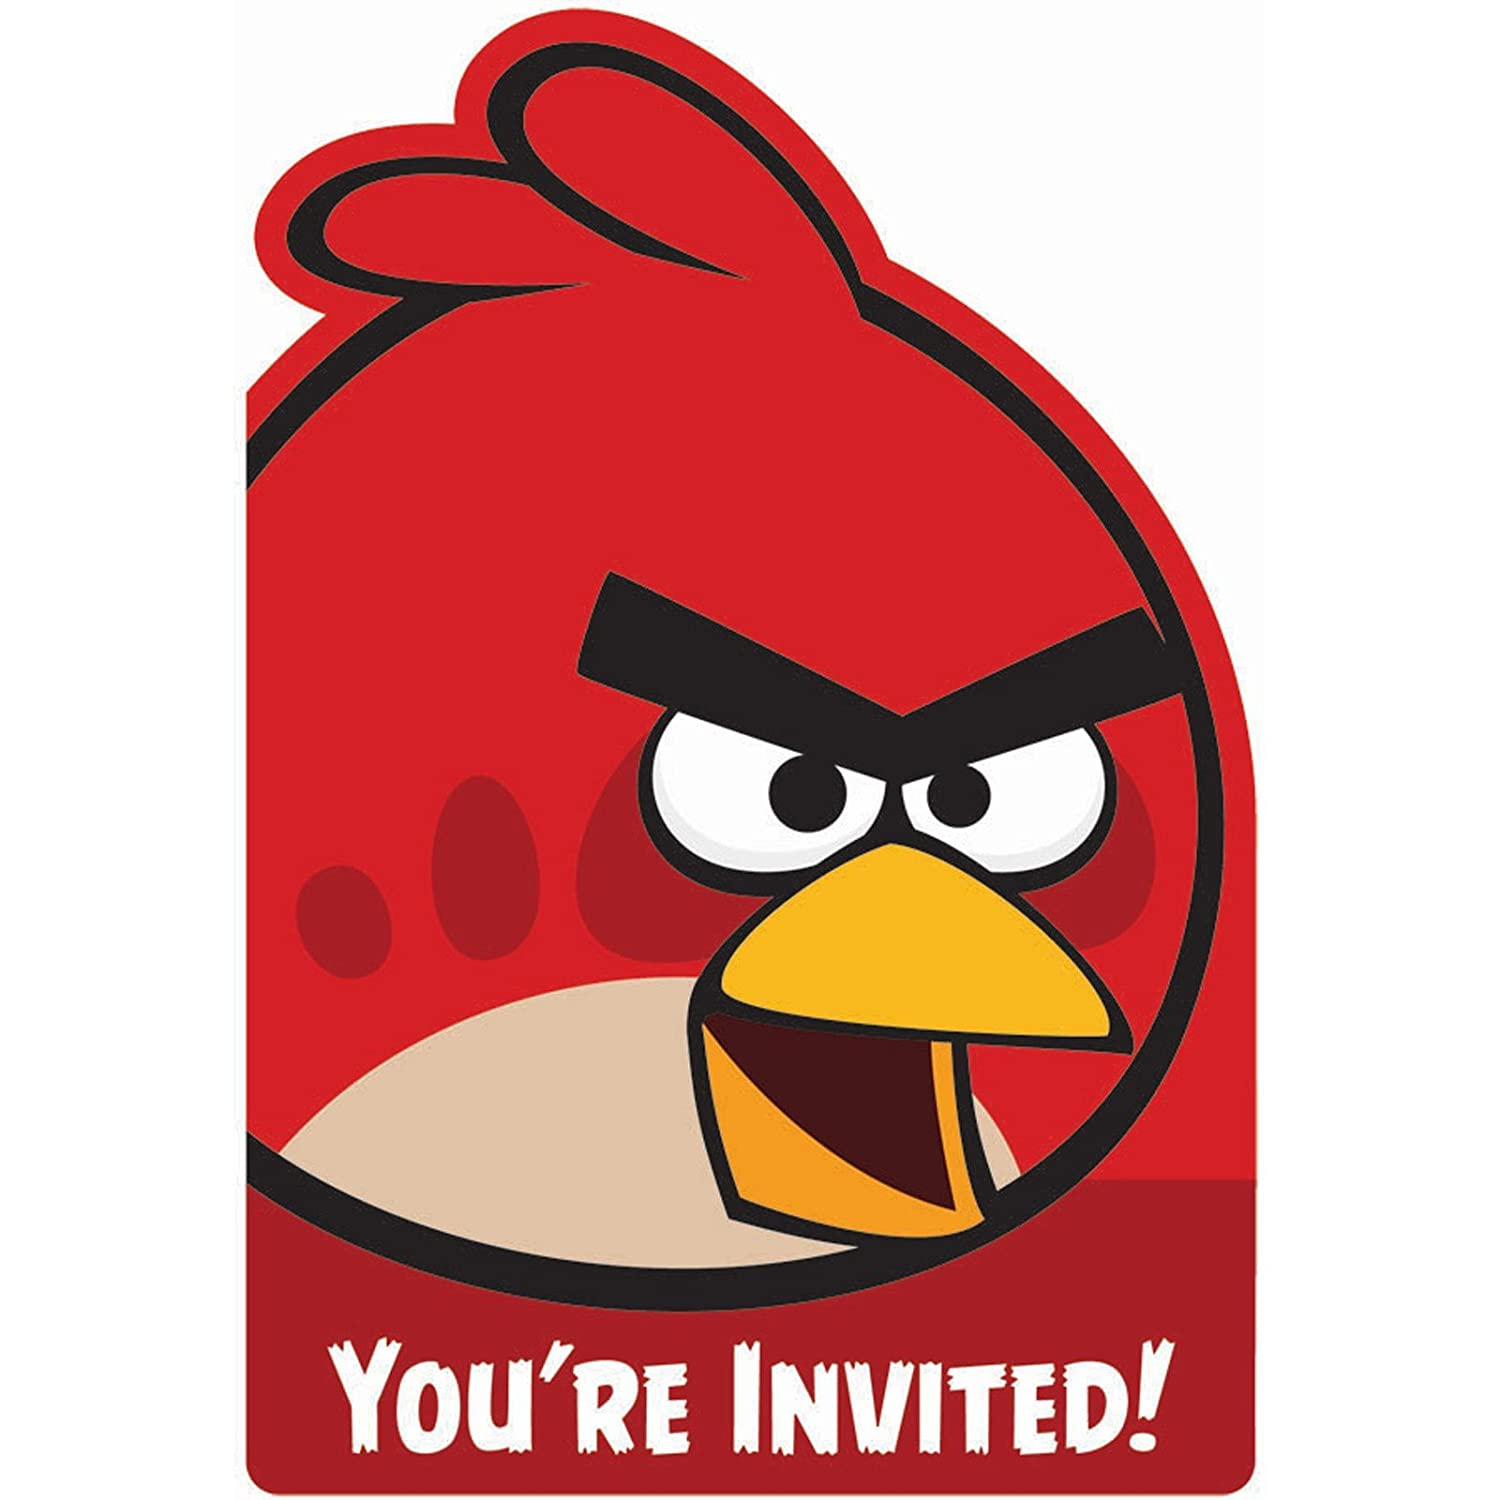 Amazon angry birds invitations 8 invites birthday party amazon angry birds invitations 8 invites birthday party supplies toys games filmwisefo Choice Image